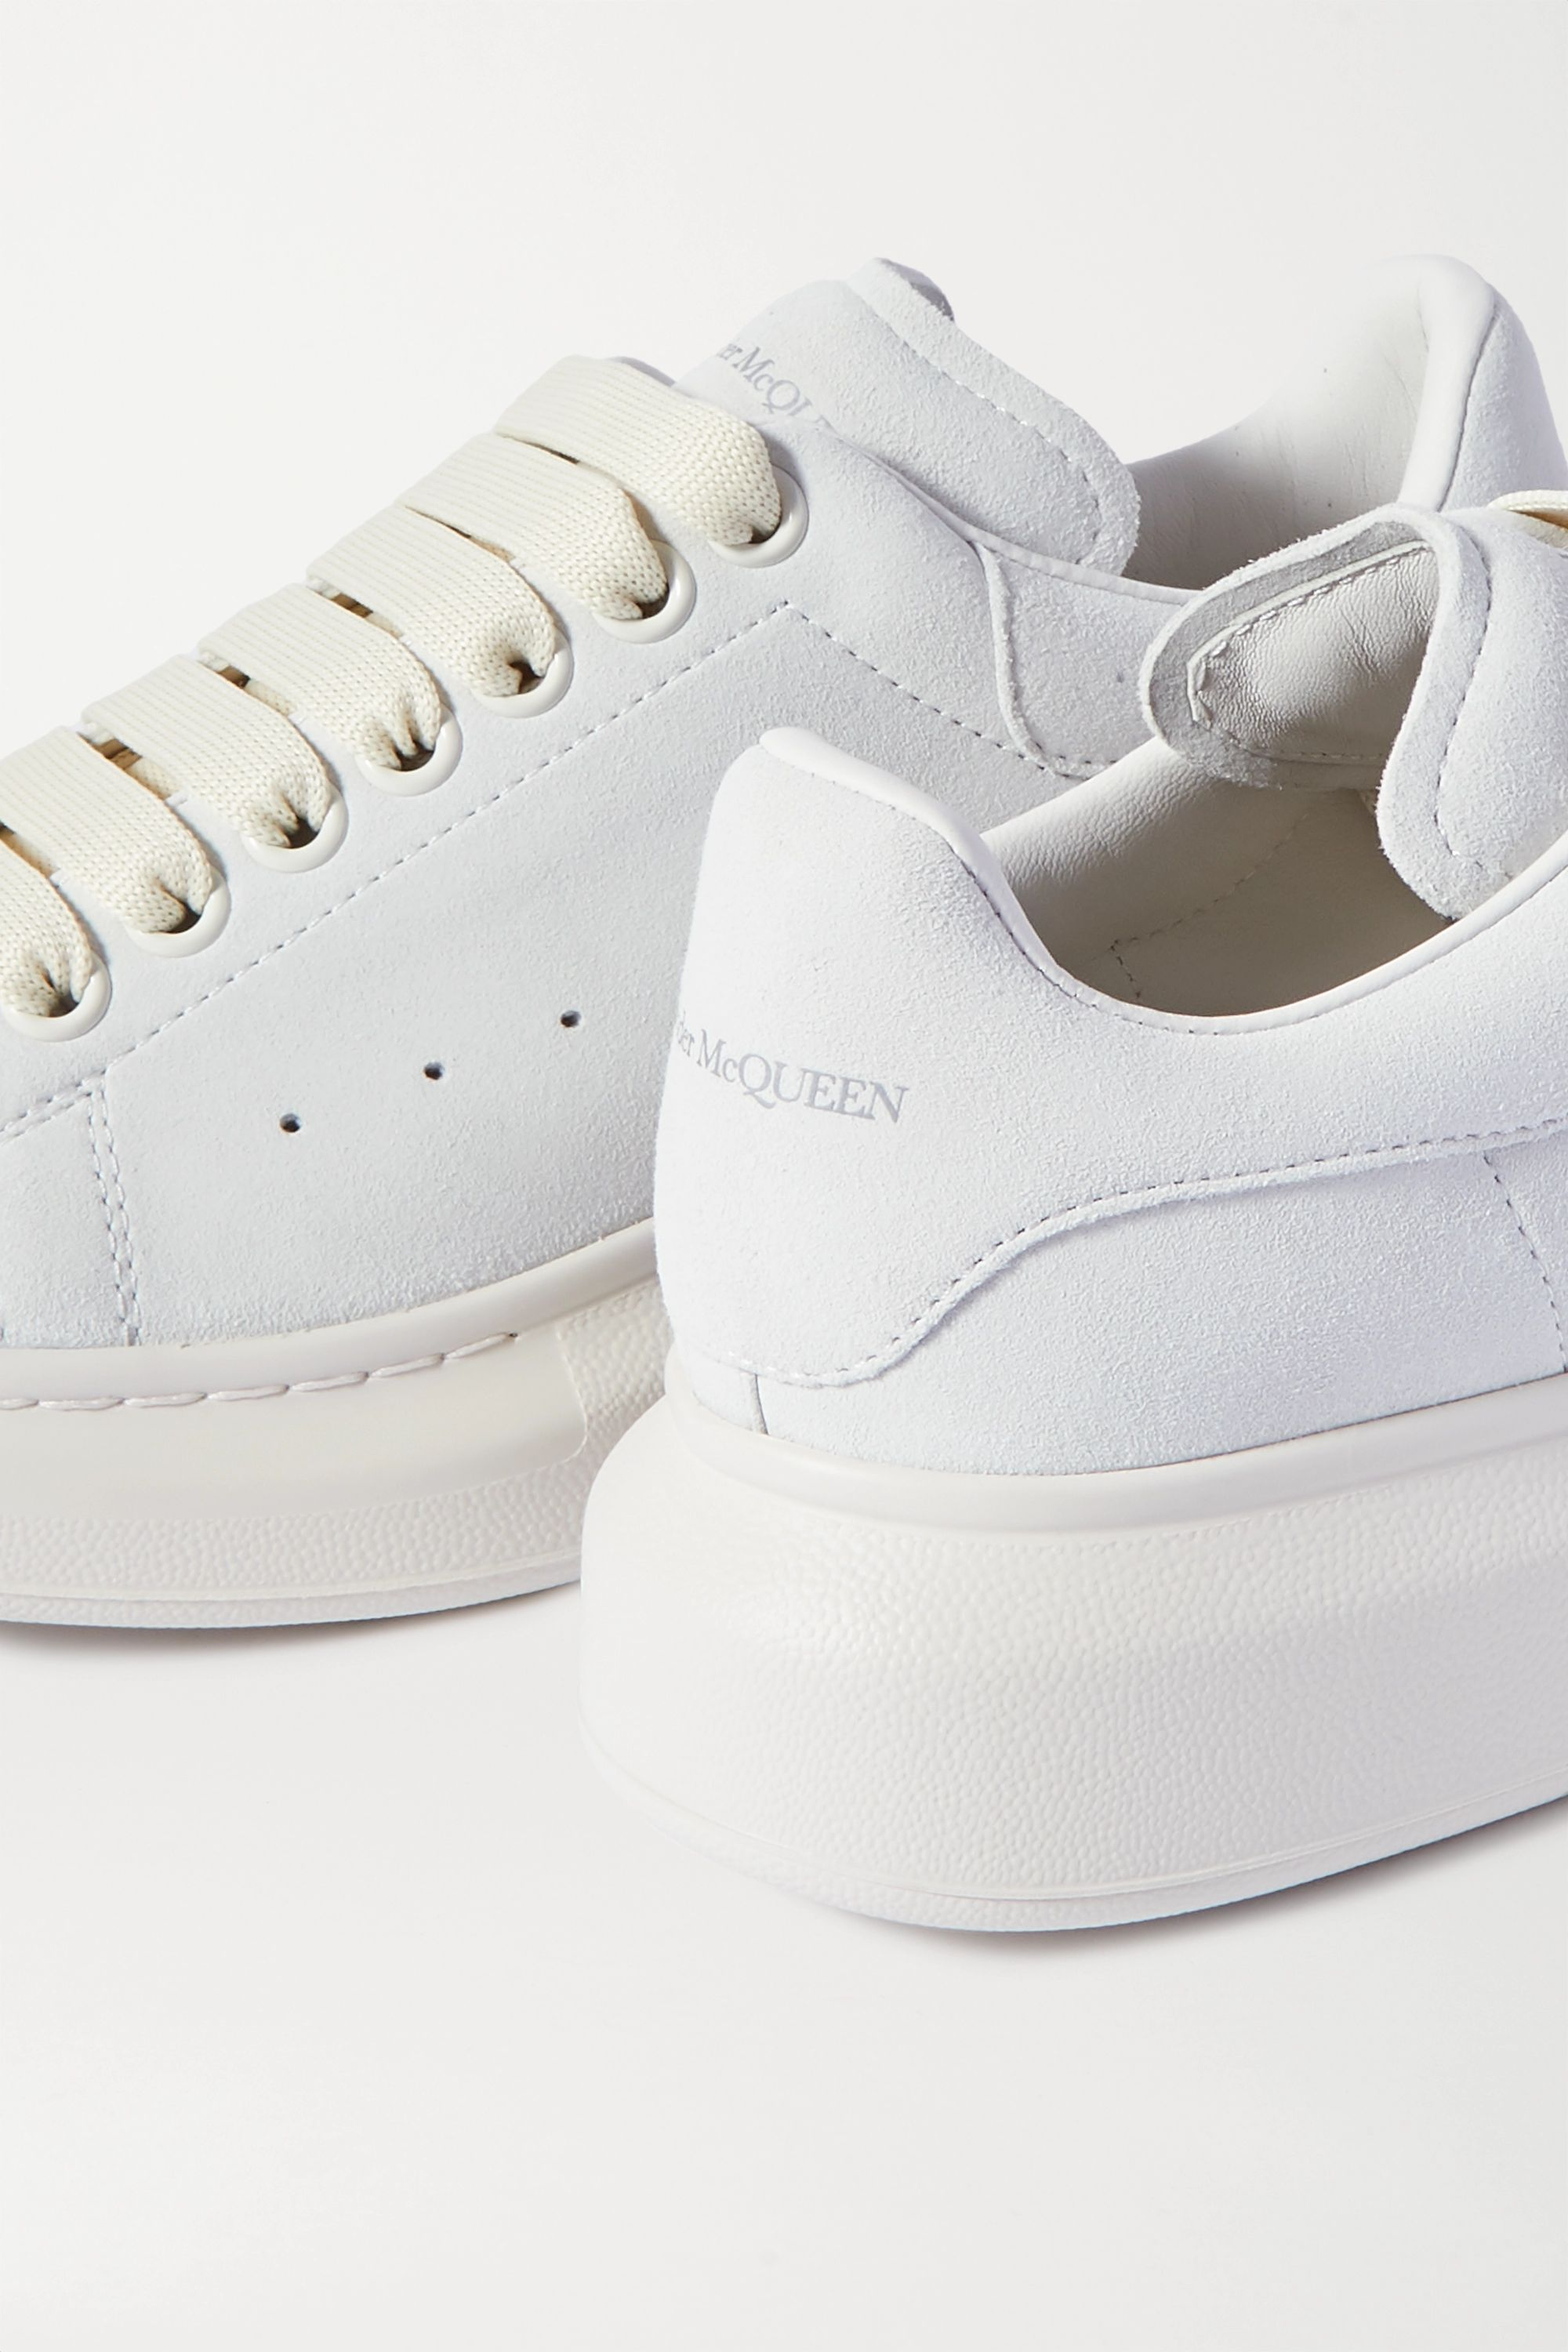 Off-white Two-tone leather exaggerated